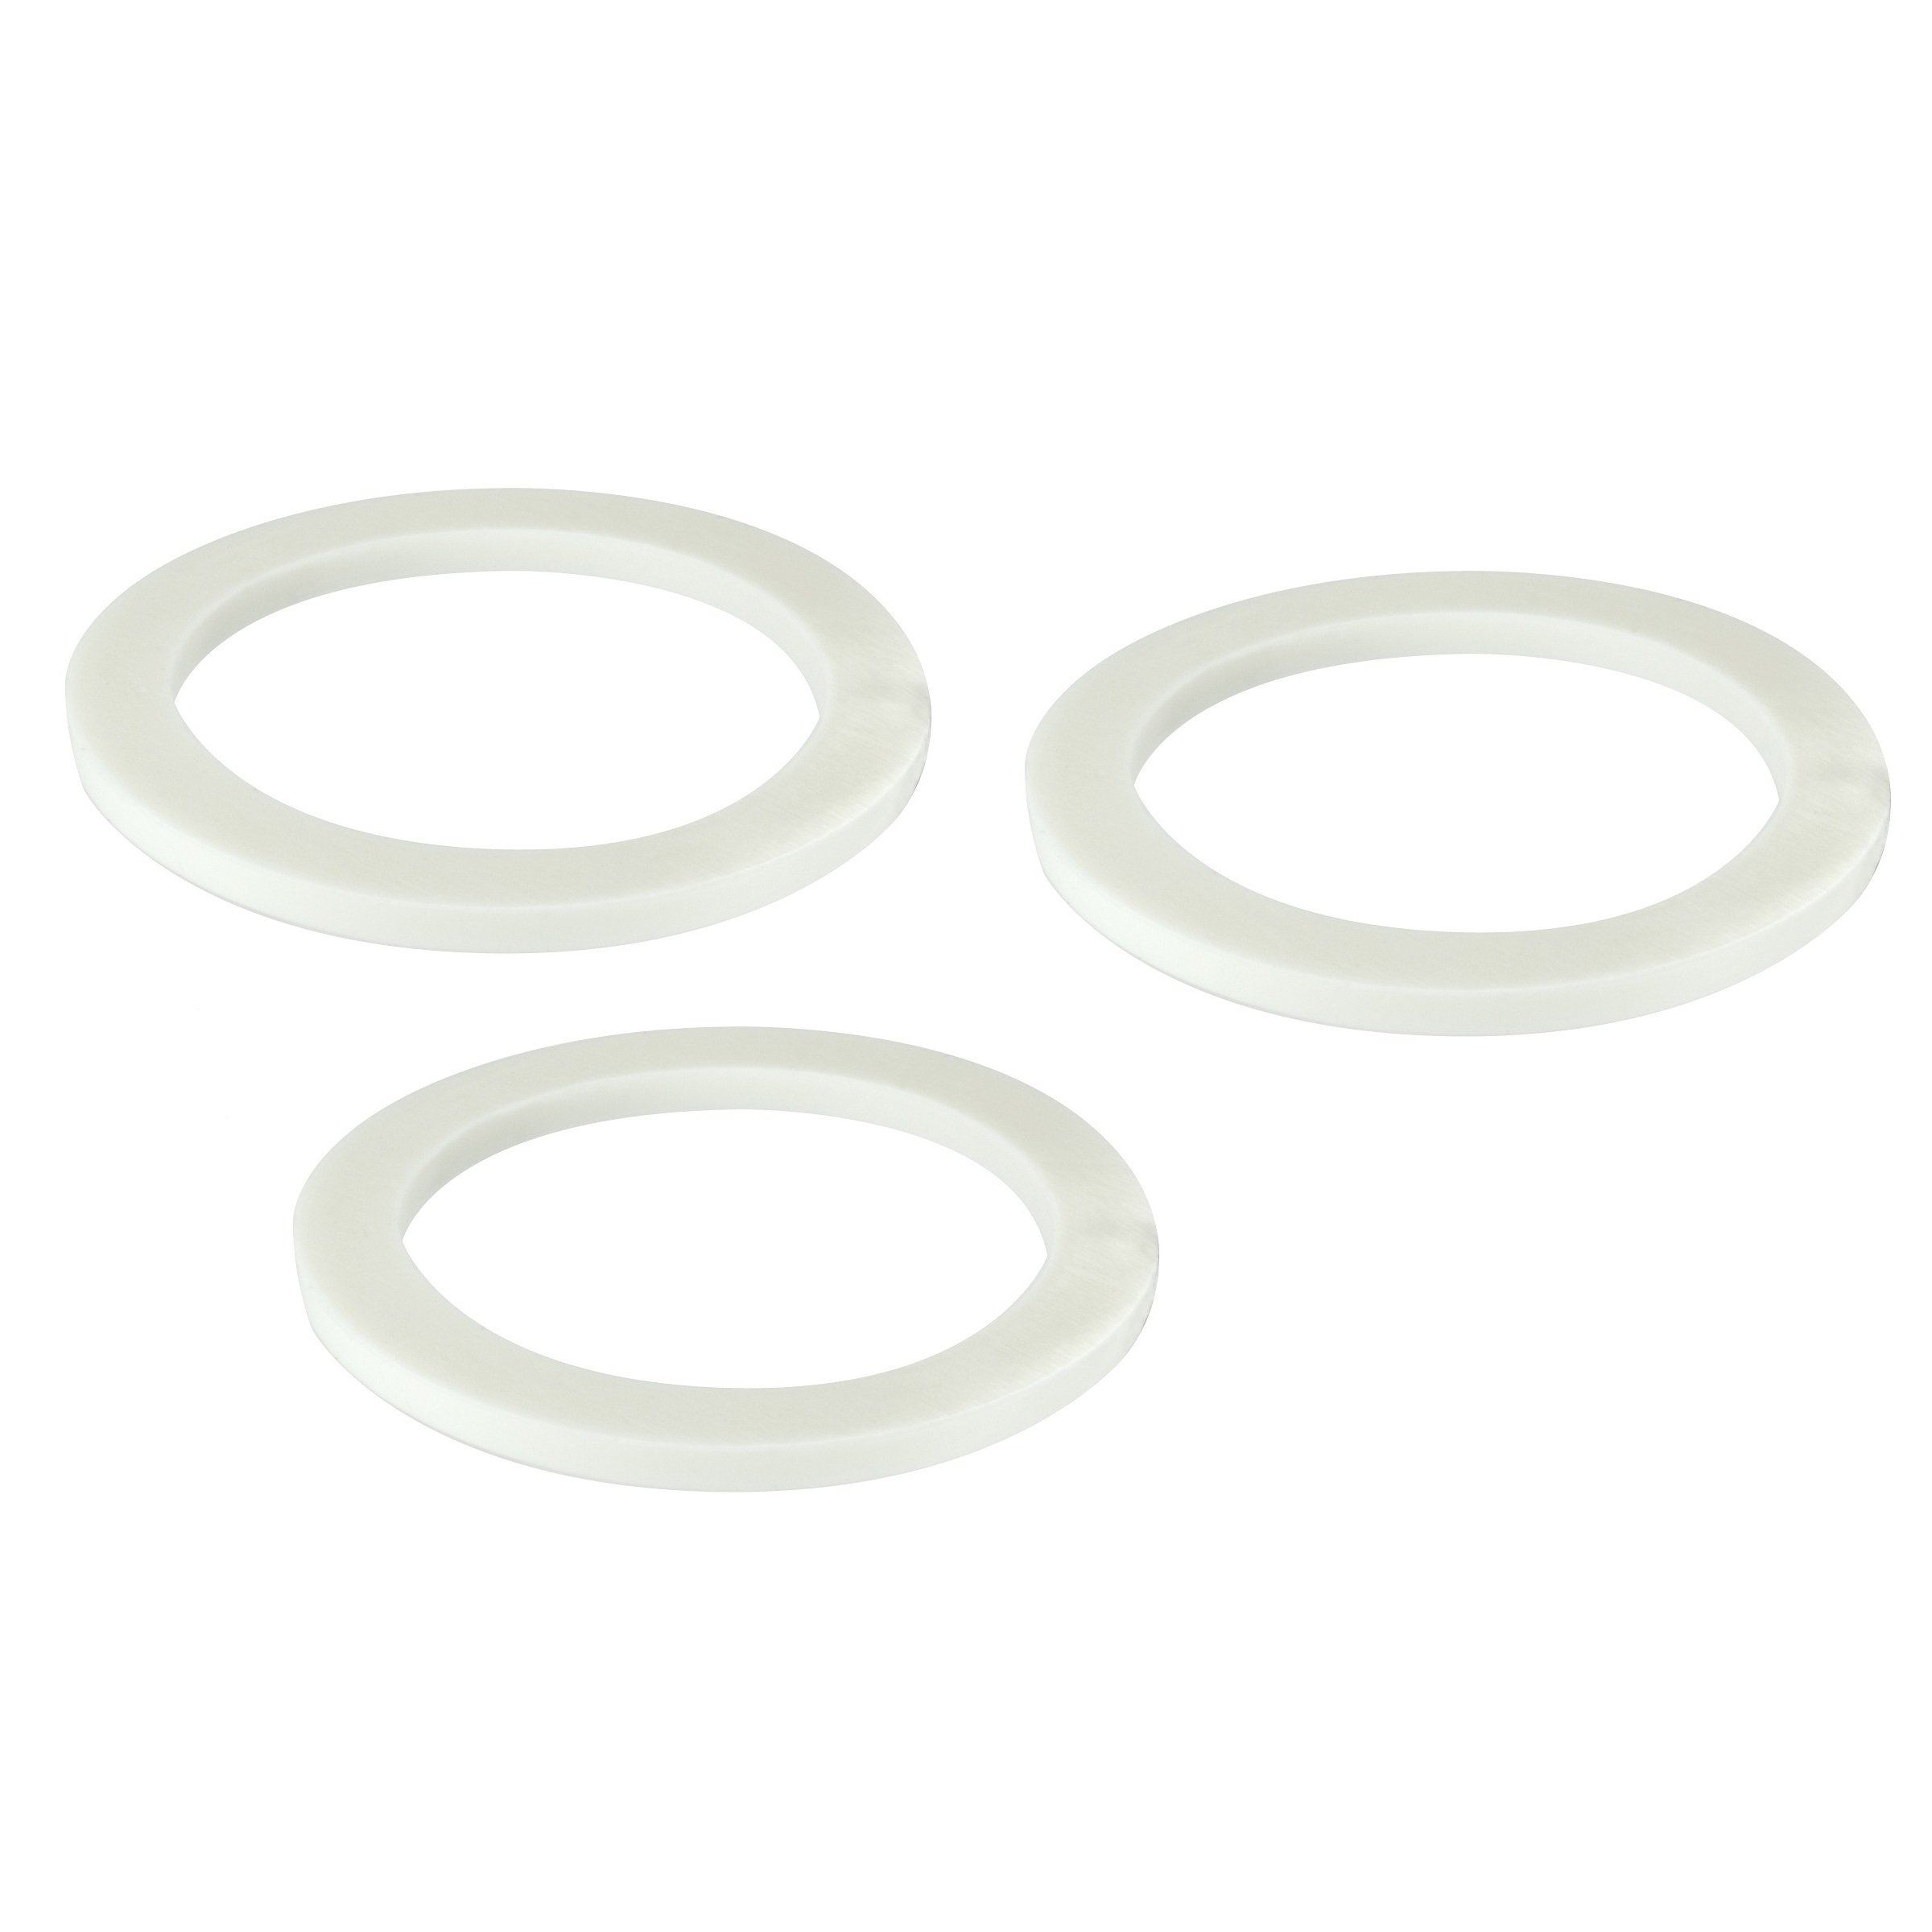 Univen Gasket for Stovetop Espresso Coffee Makers 6 Cup 3 PACK fits Bialetti, Imusa, BC, etc.